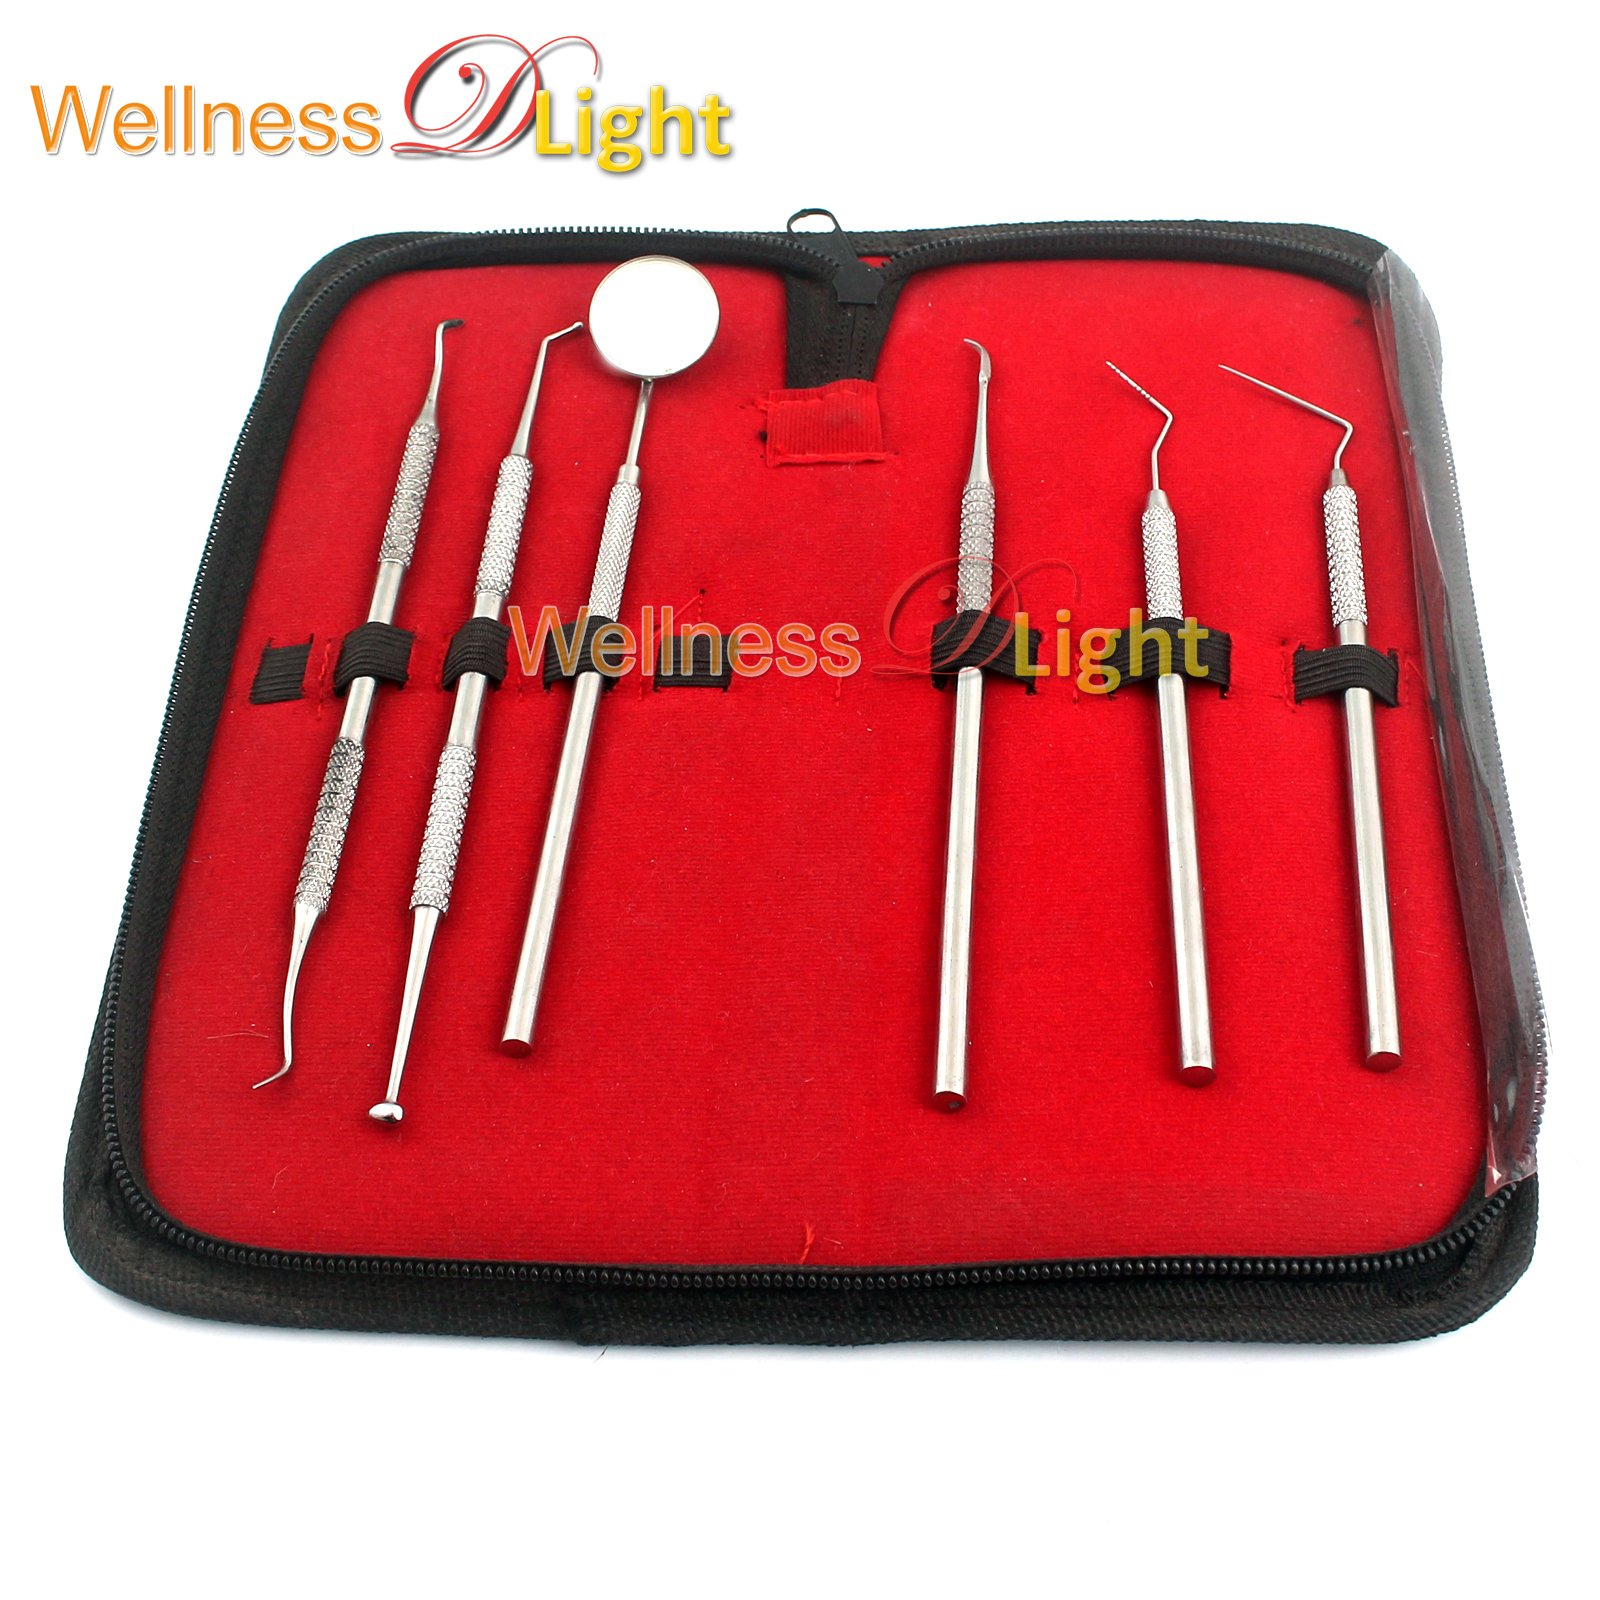 WDL DENTAL DENTIST PICK TOOL KIT 6 PIECE UP TO 8 TOOLS - DENTIST, DENTISTRY & ORAL KIT